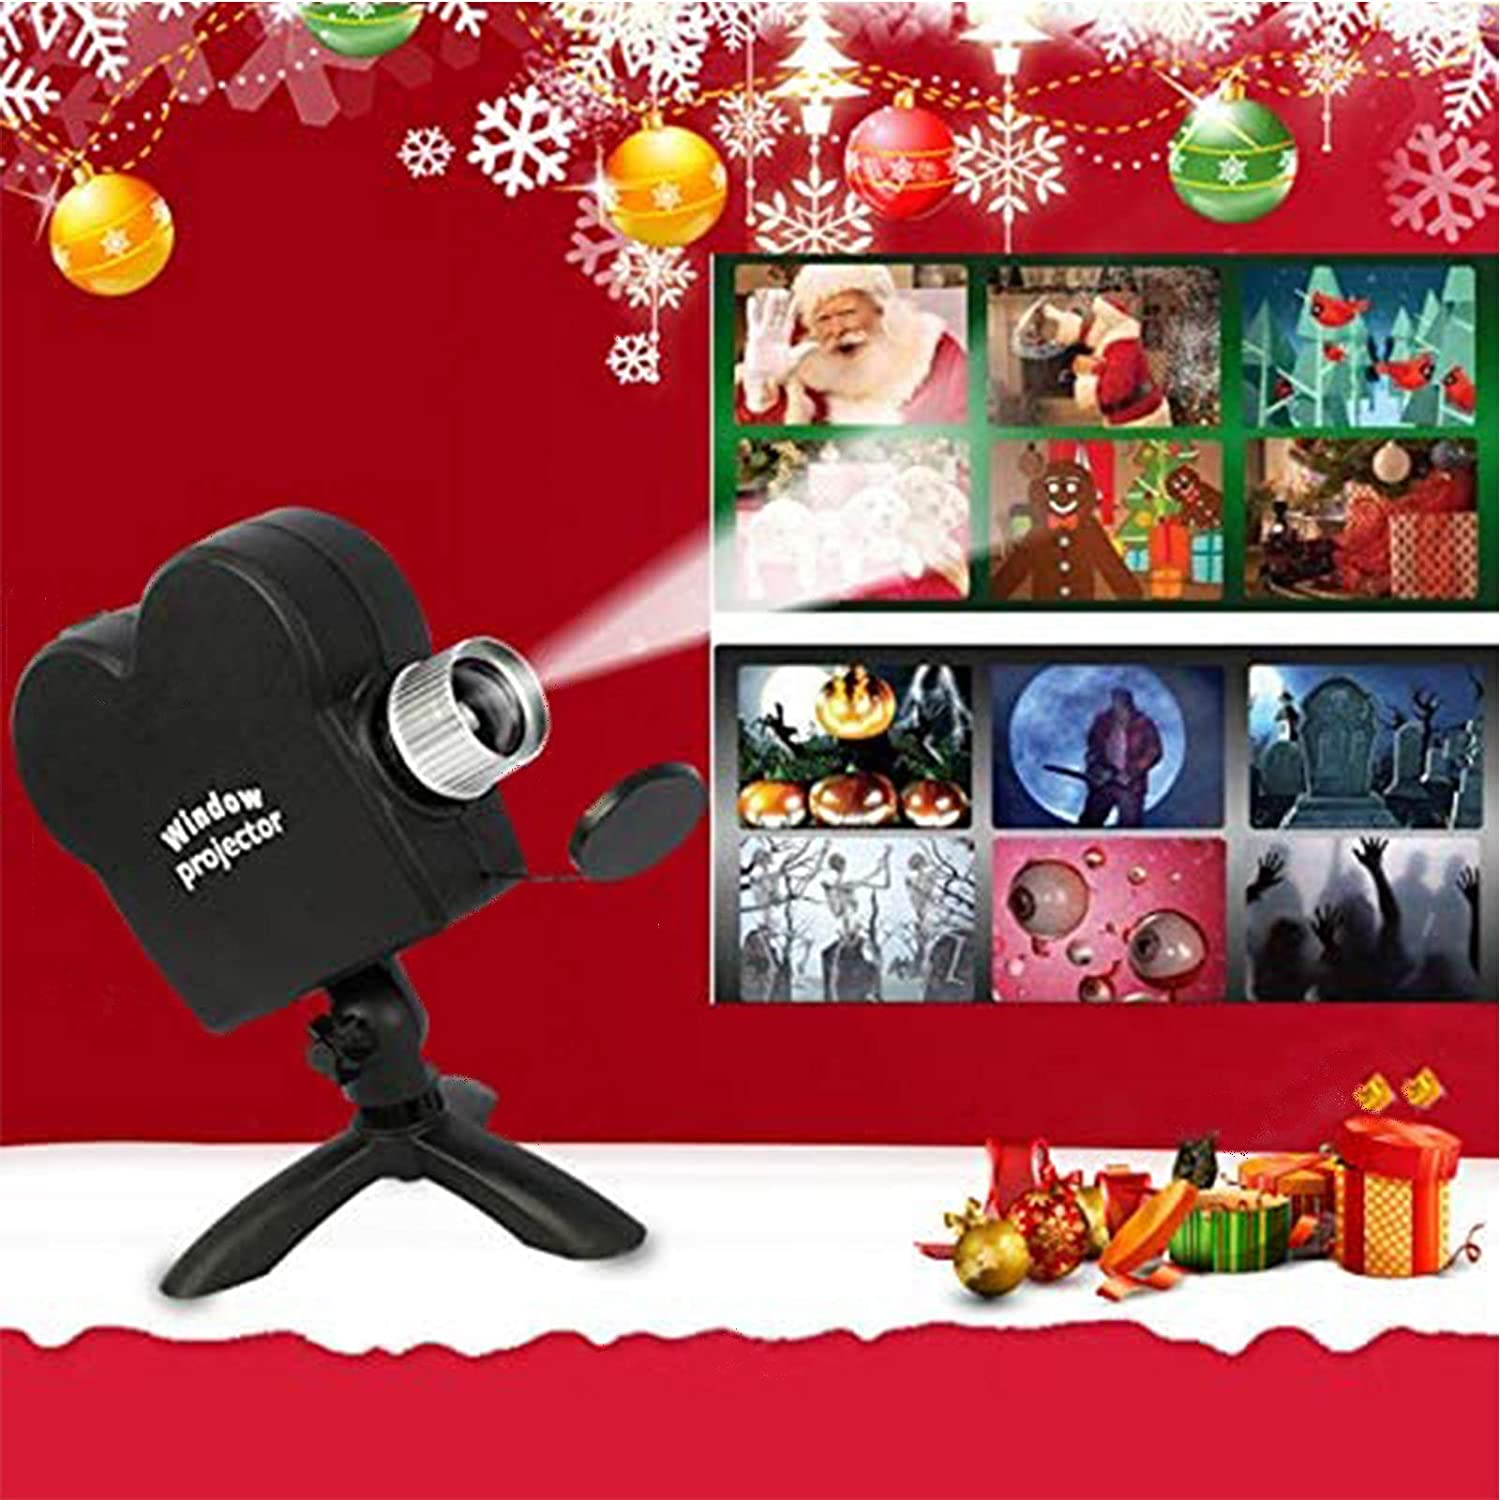 12 Film LED Projection Decoration Spotlights Turn Windows Into Festive Movie Screens for Family Gatherings Halloween Tripod Christmas Projection Lights Halloween Holographic Projection Lights